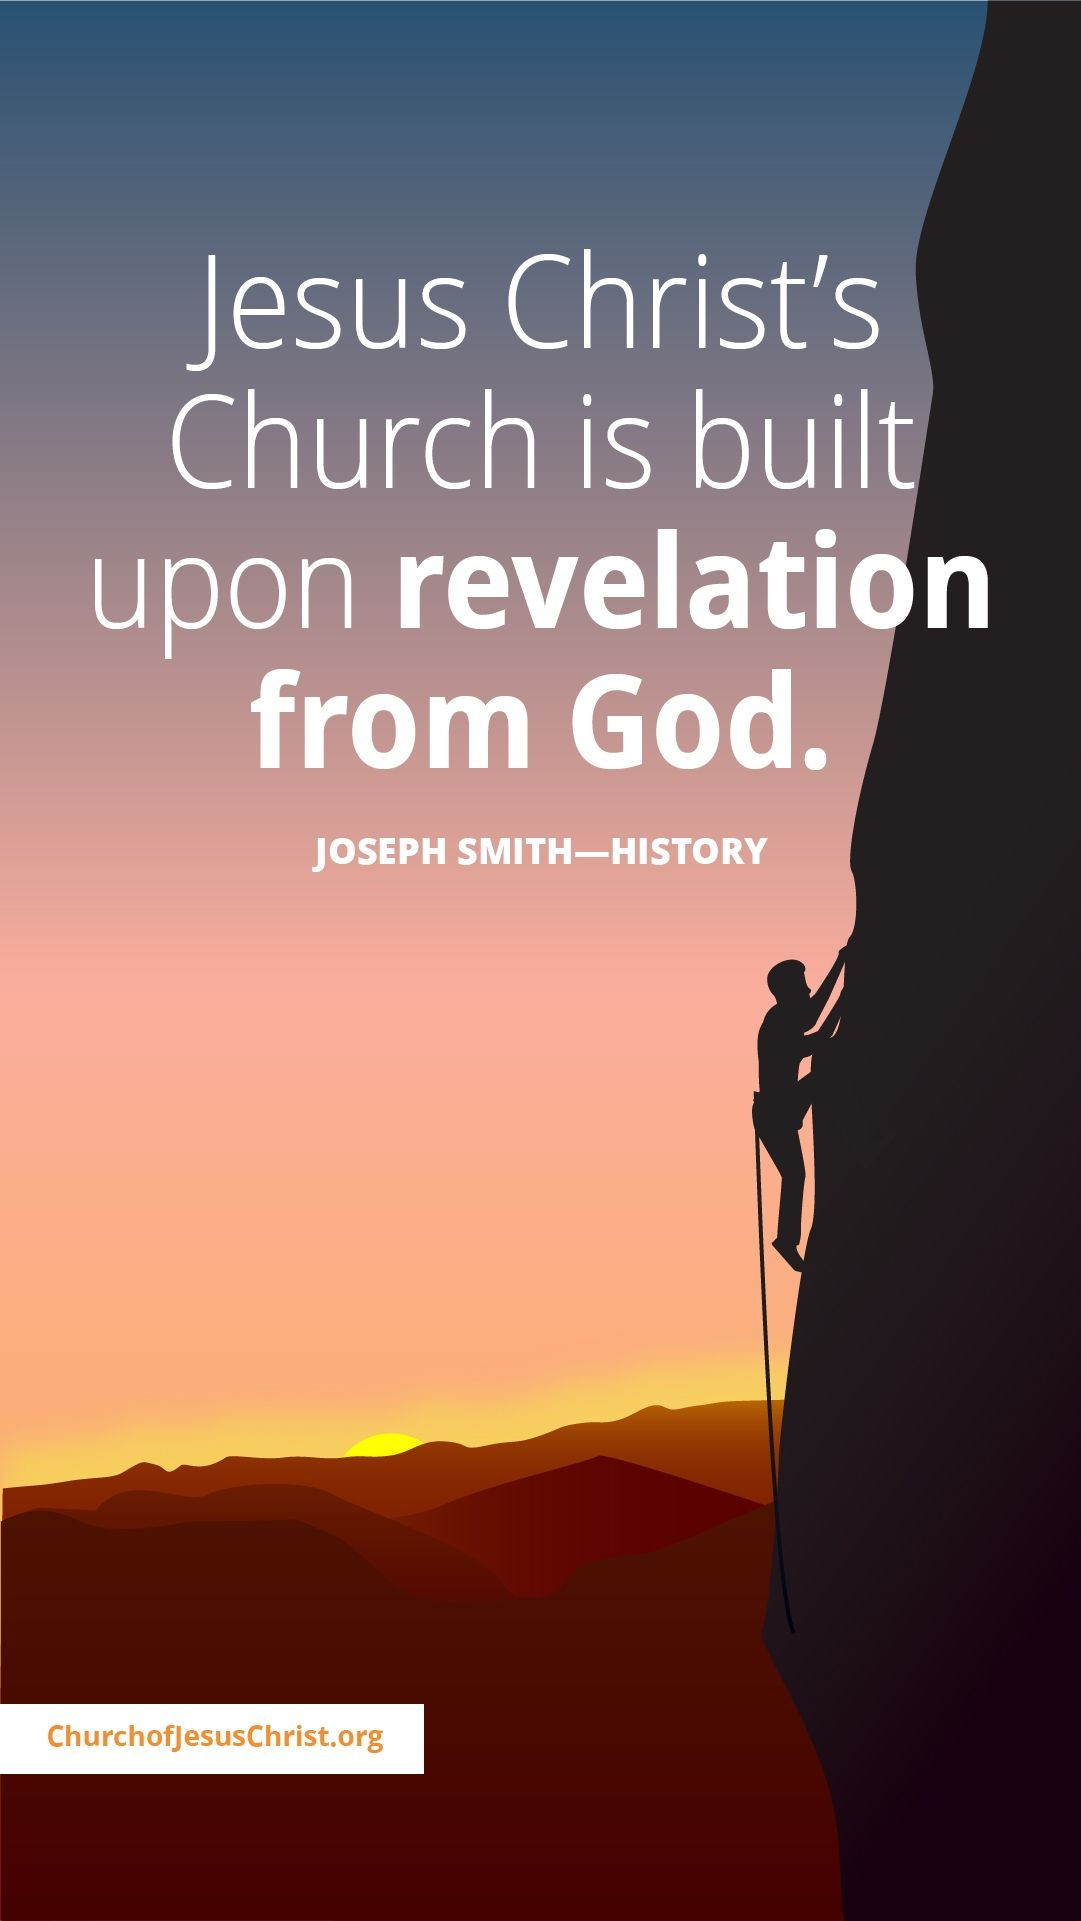 Jesus Christ's Church is built upon revelation from God. — See Joseph Smith—History